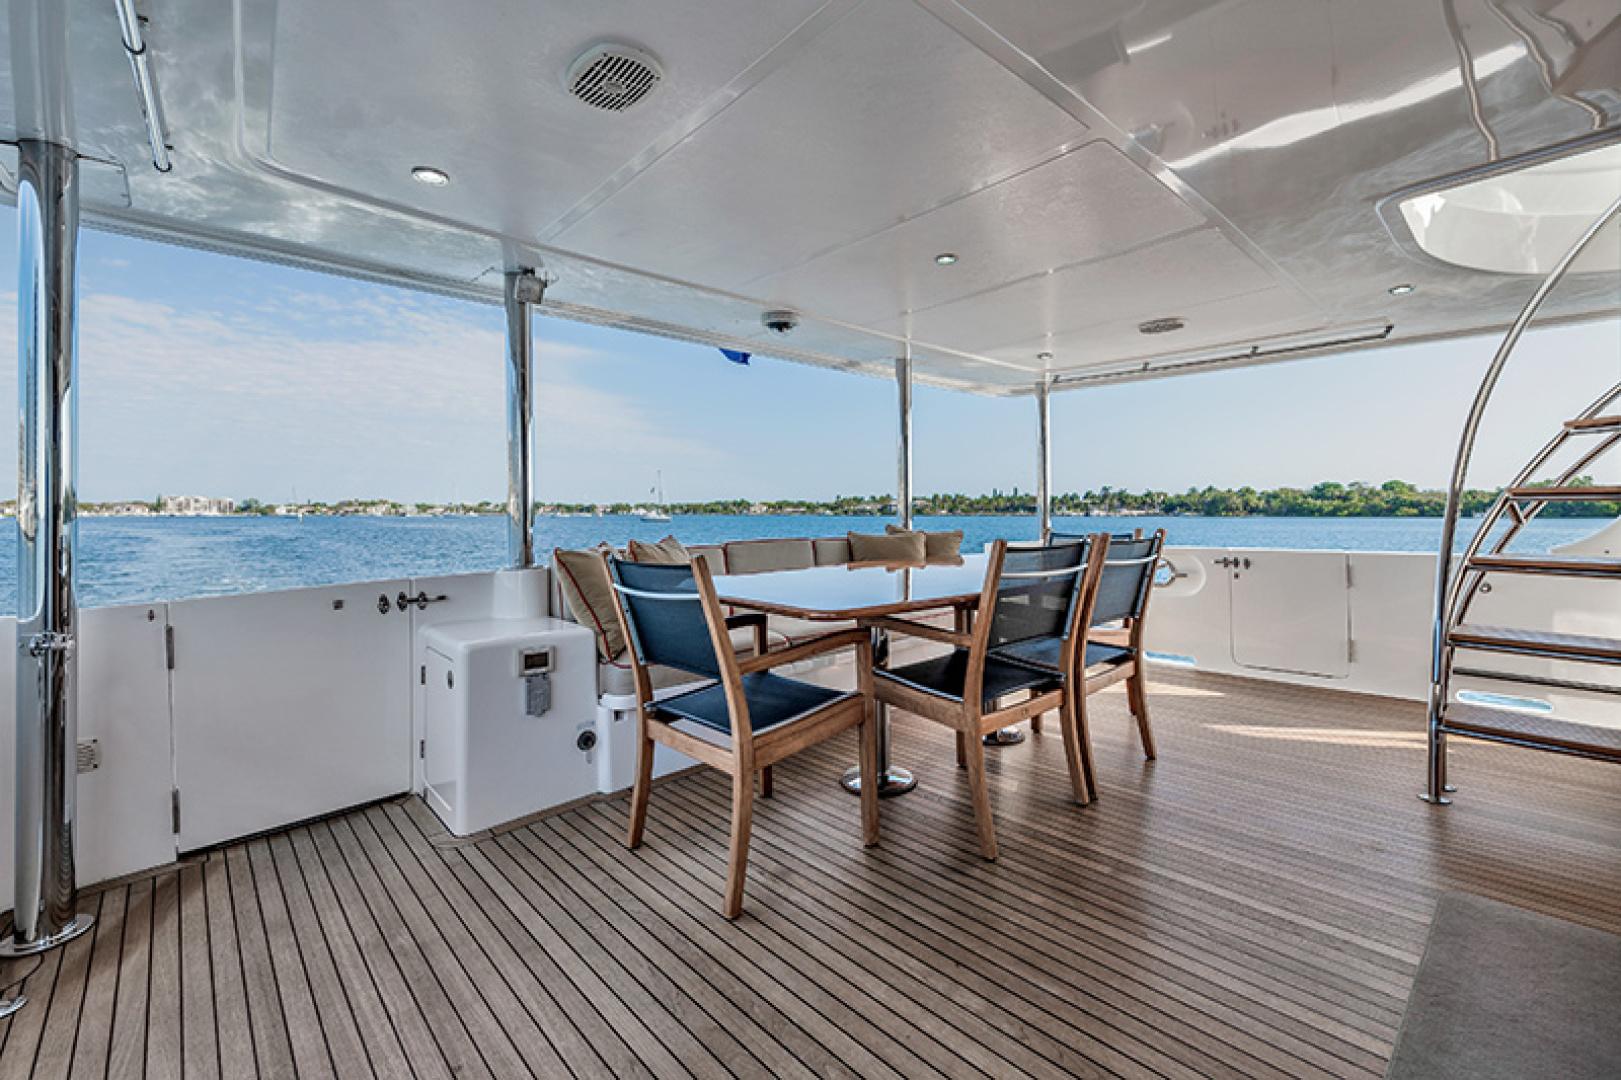 Outer Reef Yachts-Raised Pilothouse 2007-MS. MONICA Palm Beach Gardens-Florida-United States-Aft Deck-1119573   Thumbnail